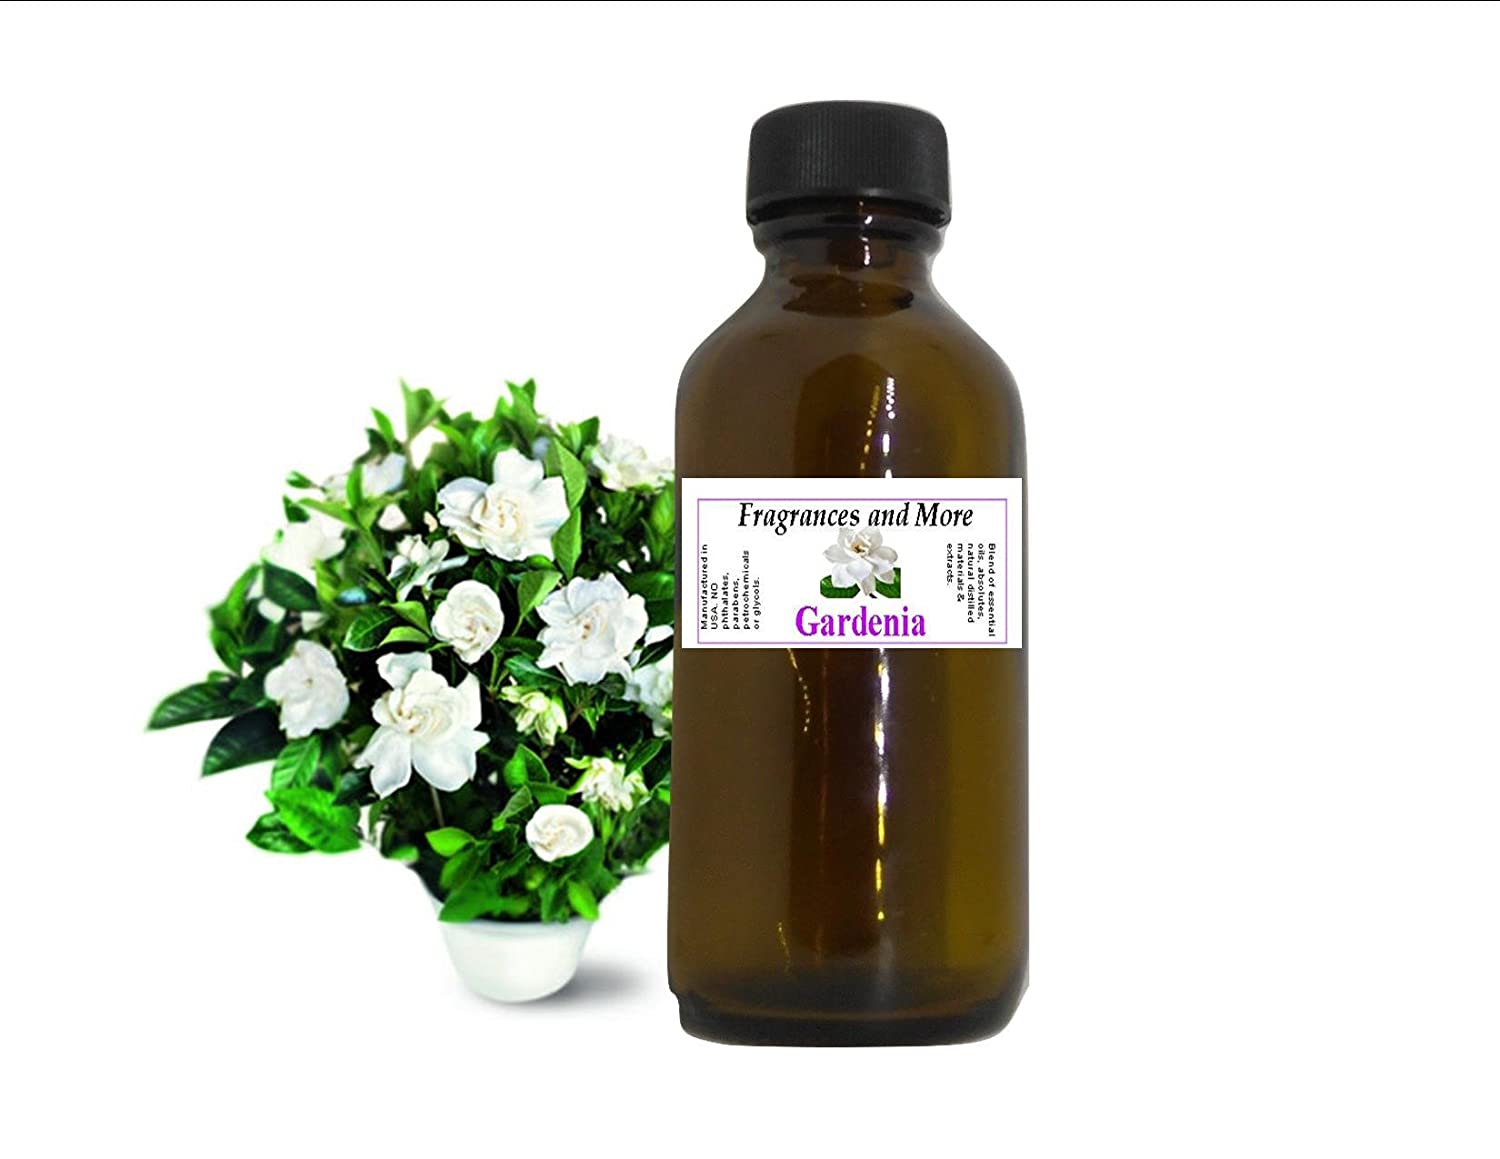 GARDENIA FRAGRANCE OIL| For Soap Making| Candle Making| For Use with Diffusers| Add to Bath & Body Products| Home and Office Scents| 2 oz amber glass bottle